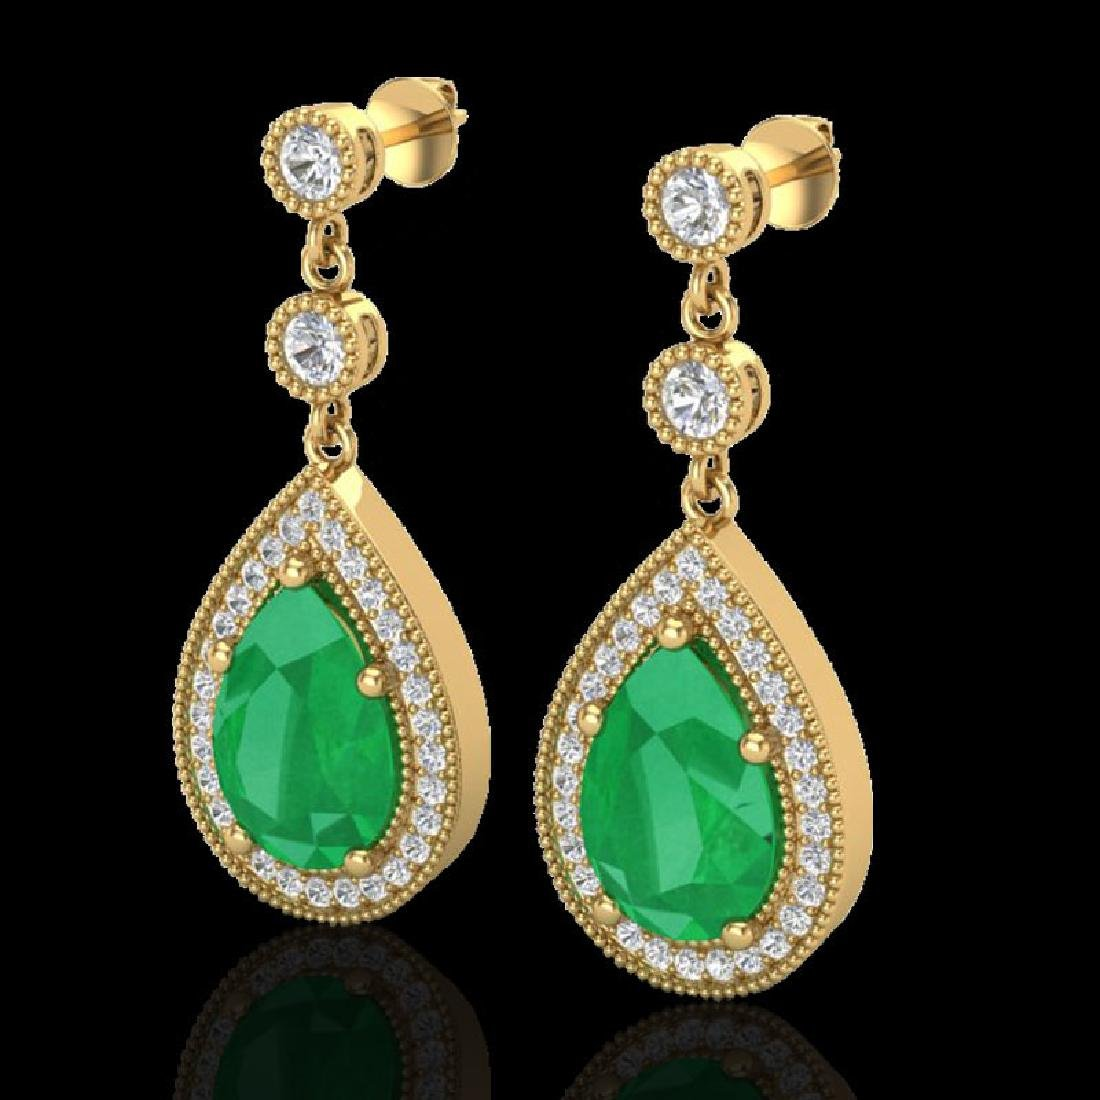 6 CTW Emerald & Micro Pave VS/SI Diamond Earrings